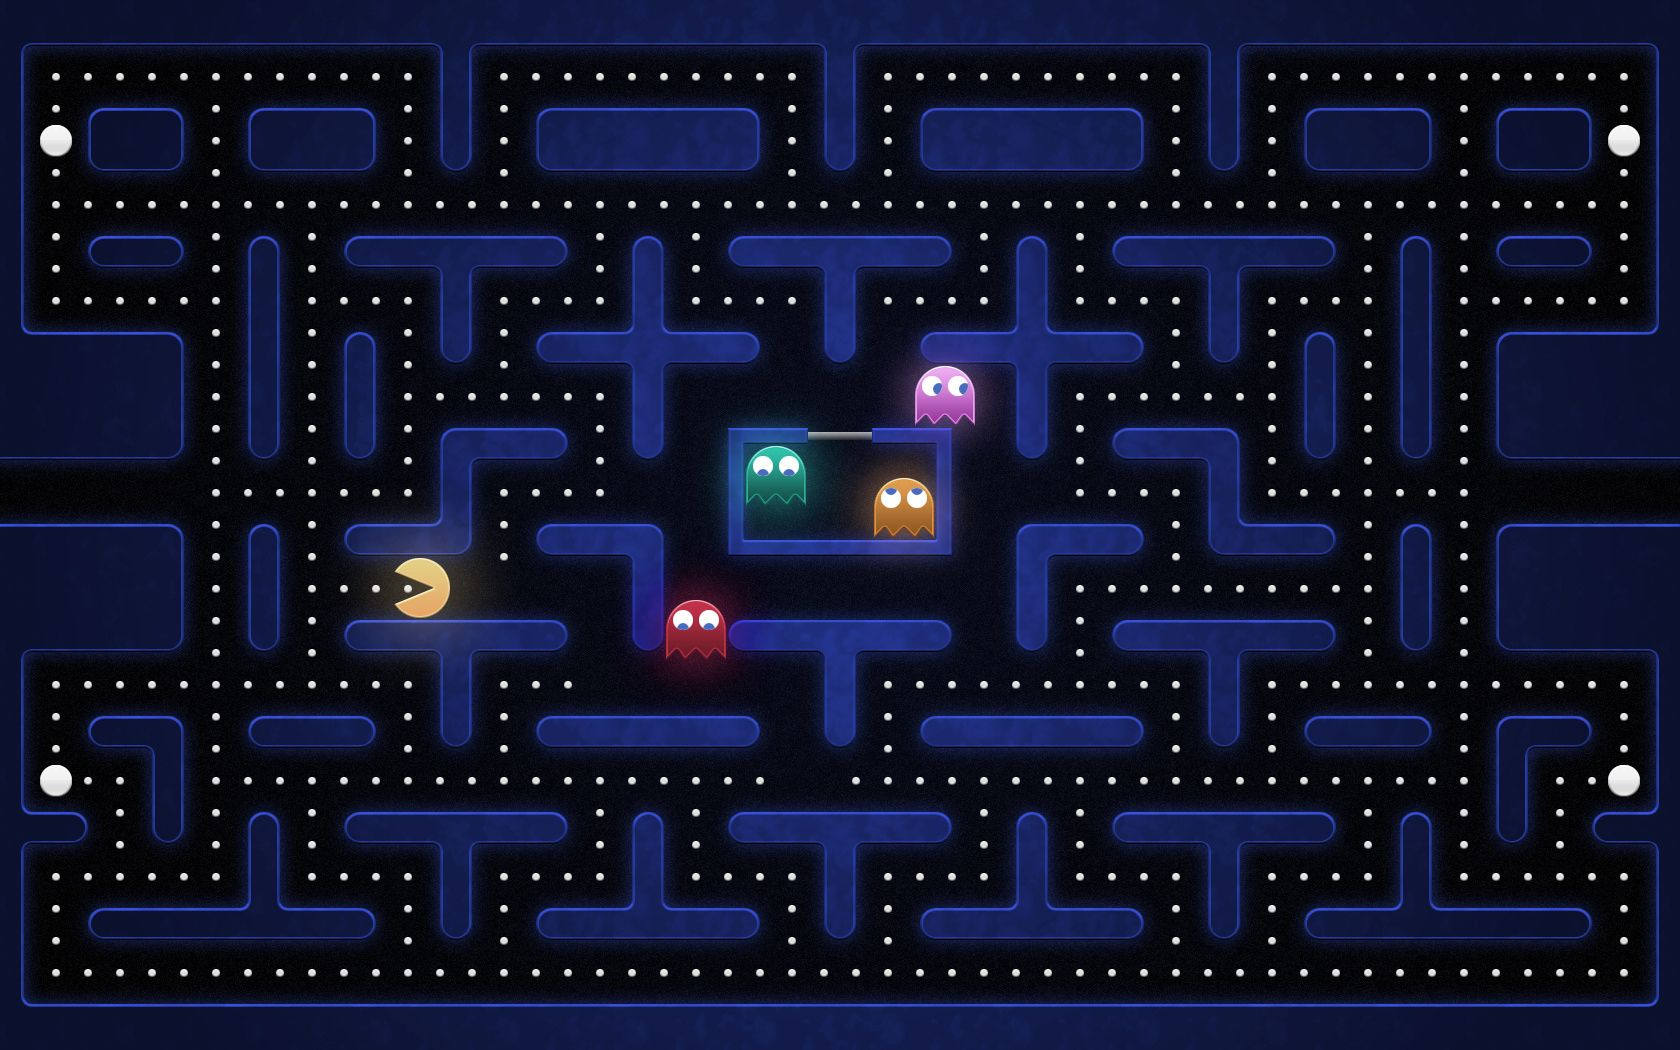 Must see Wallpaper Home Screen Pacman - f971752b308acd8dc118cbe18b73d381  Trends_346493.jpg